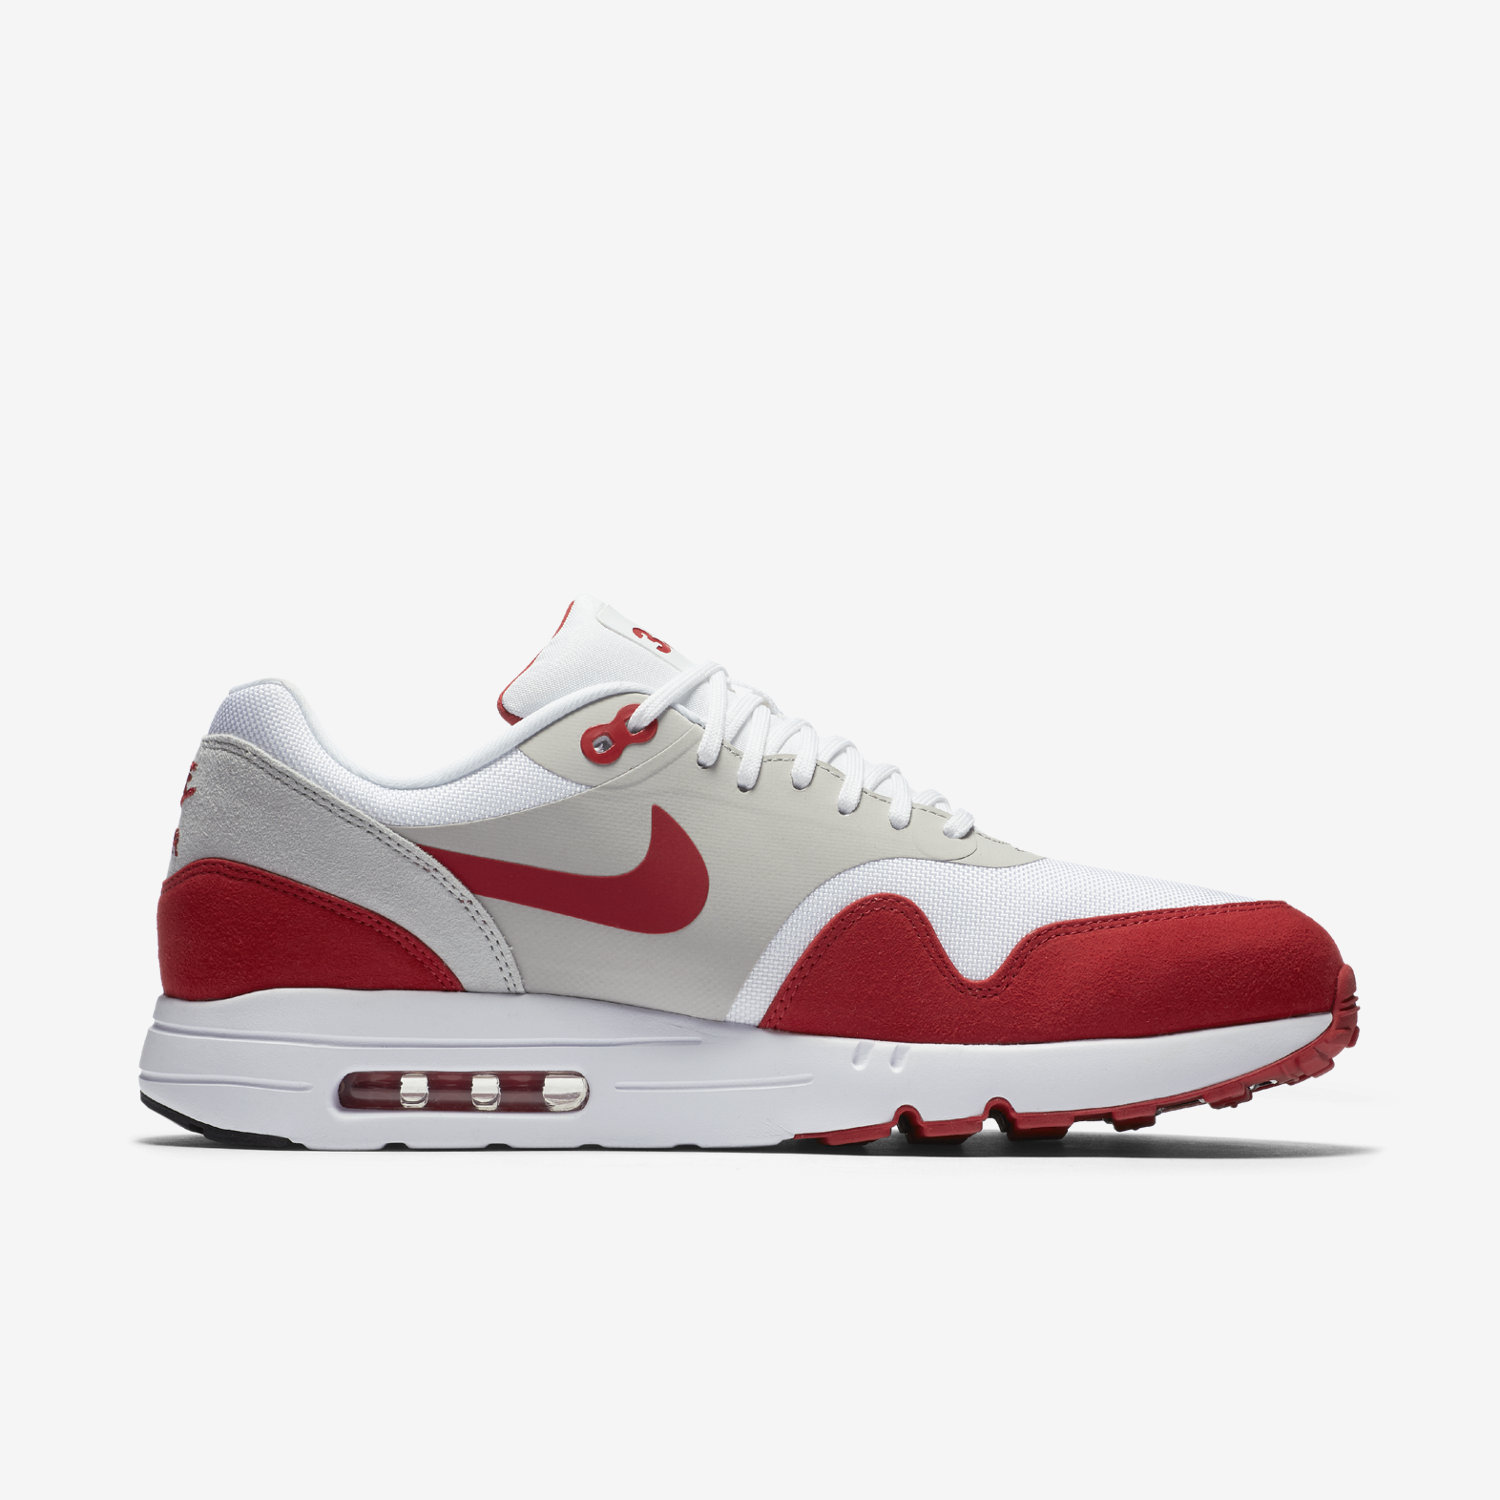 Air Max 1 whiite/white white white Air Max 1 Nike Flight Club